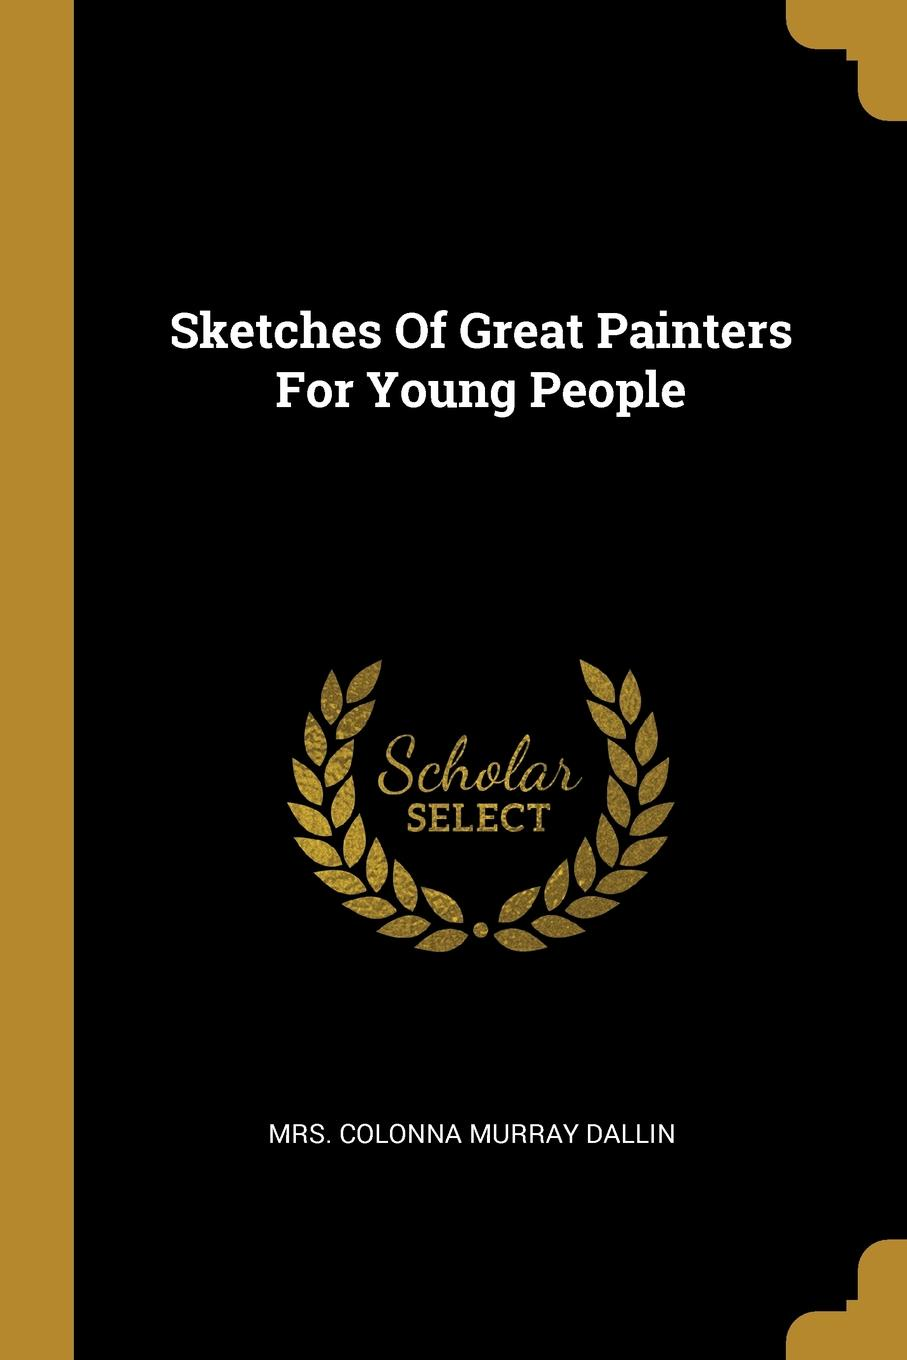 Sketches Of Great Painters For Young People